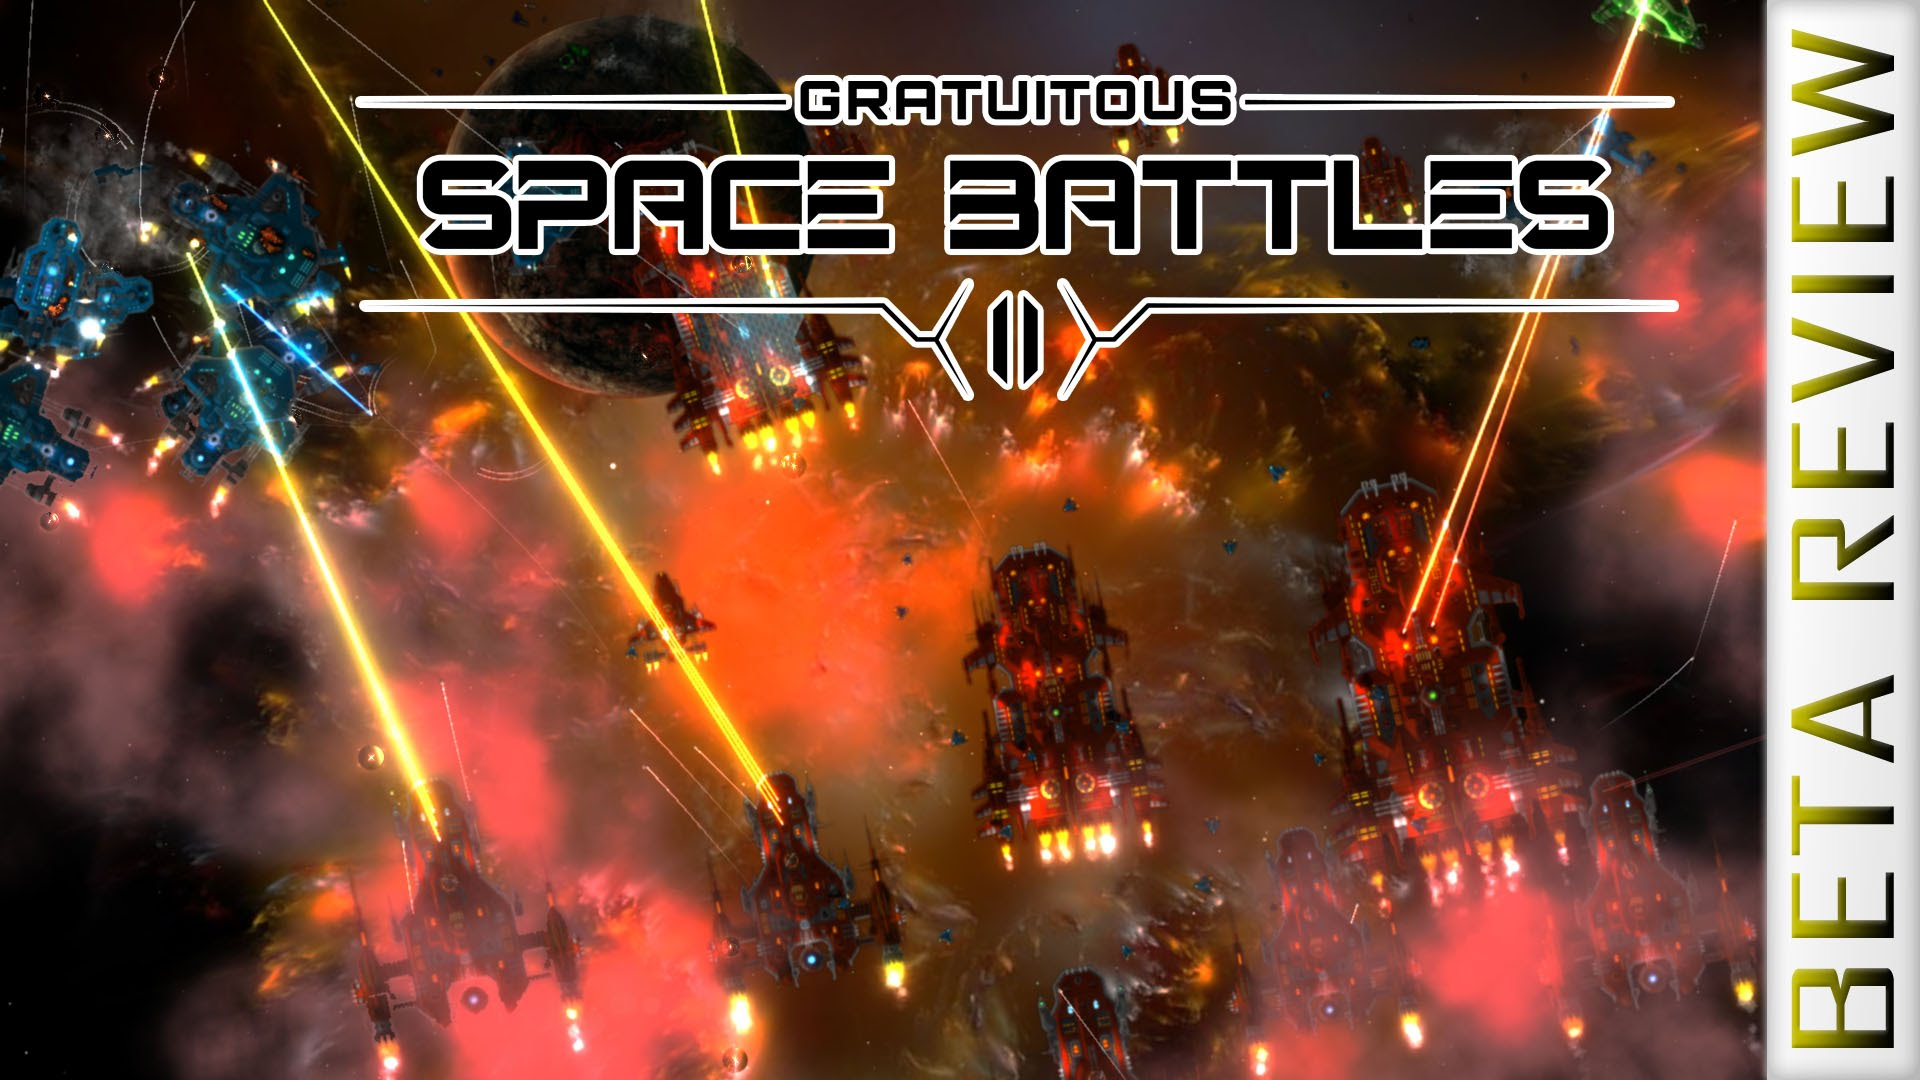 HQ Gratuitous Space Battles 2 Wallpapers | File 253.44Kb